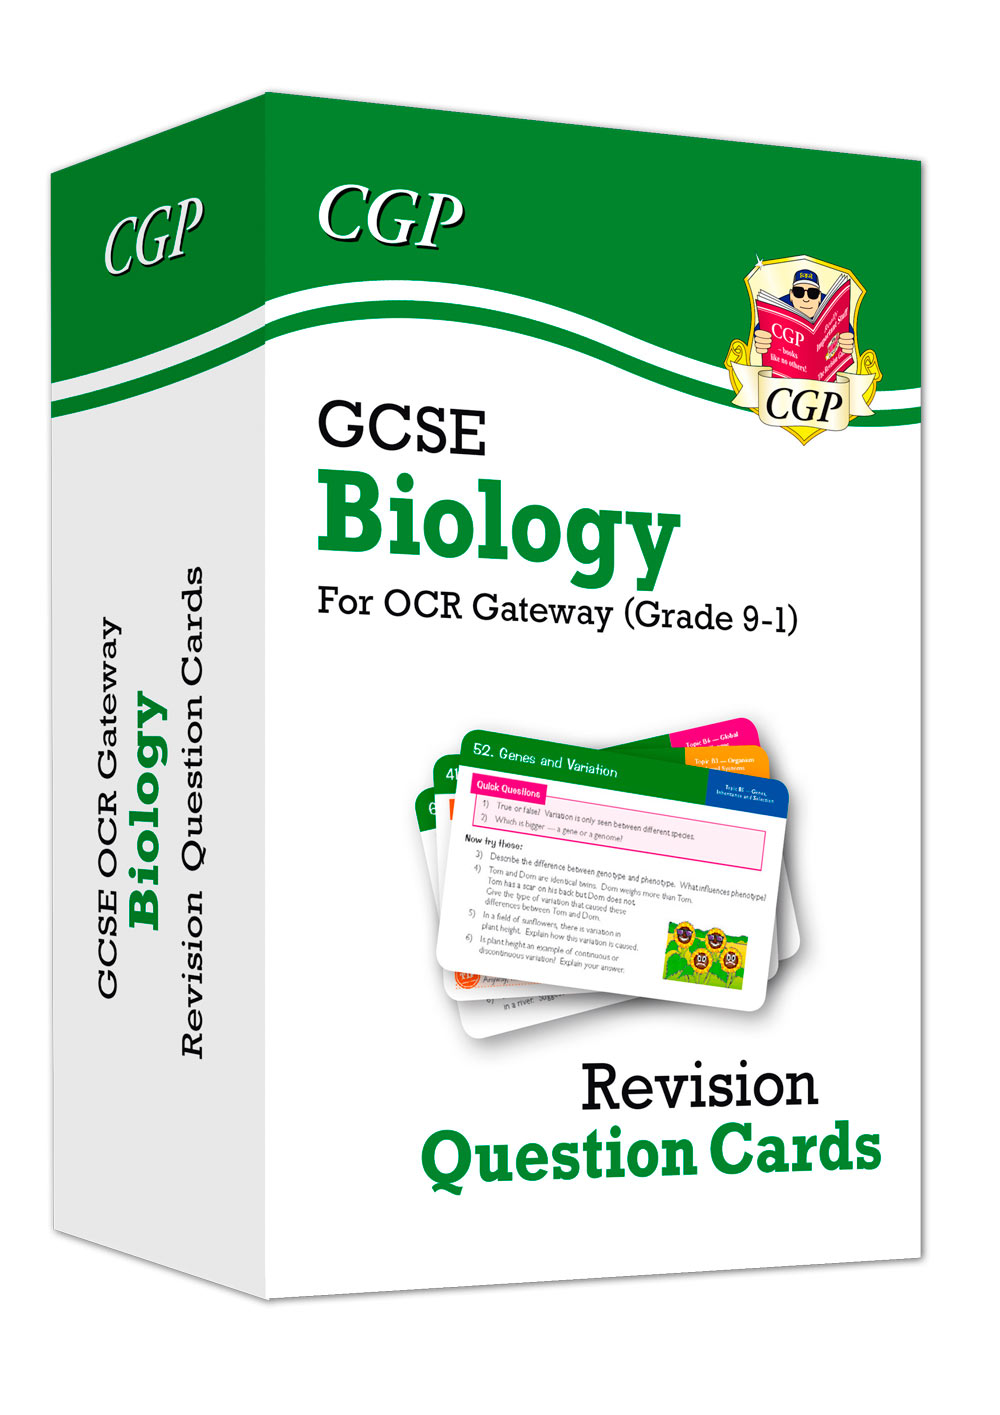 BRF41 - New 9-1 GCSE Biology OCR Gateway Revision Question Cards